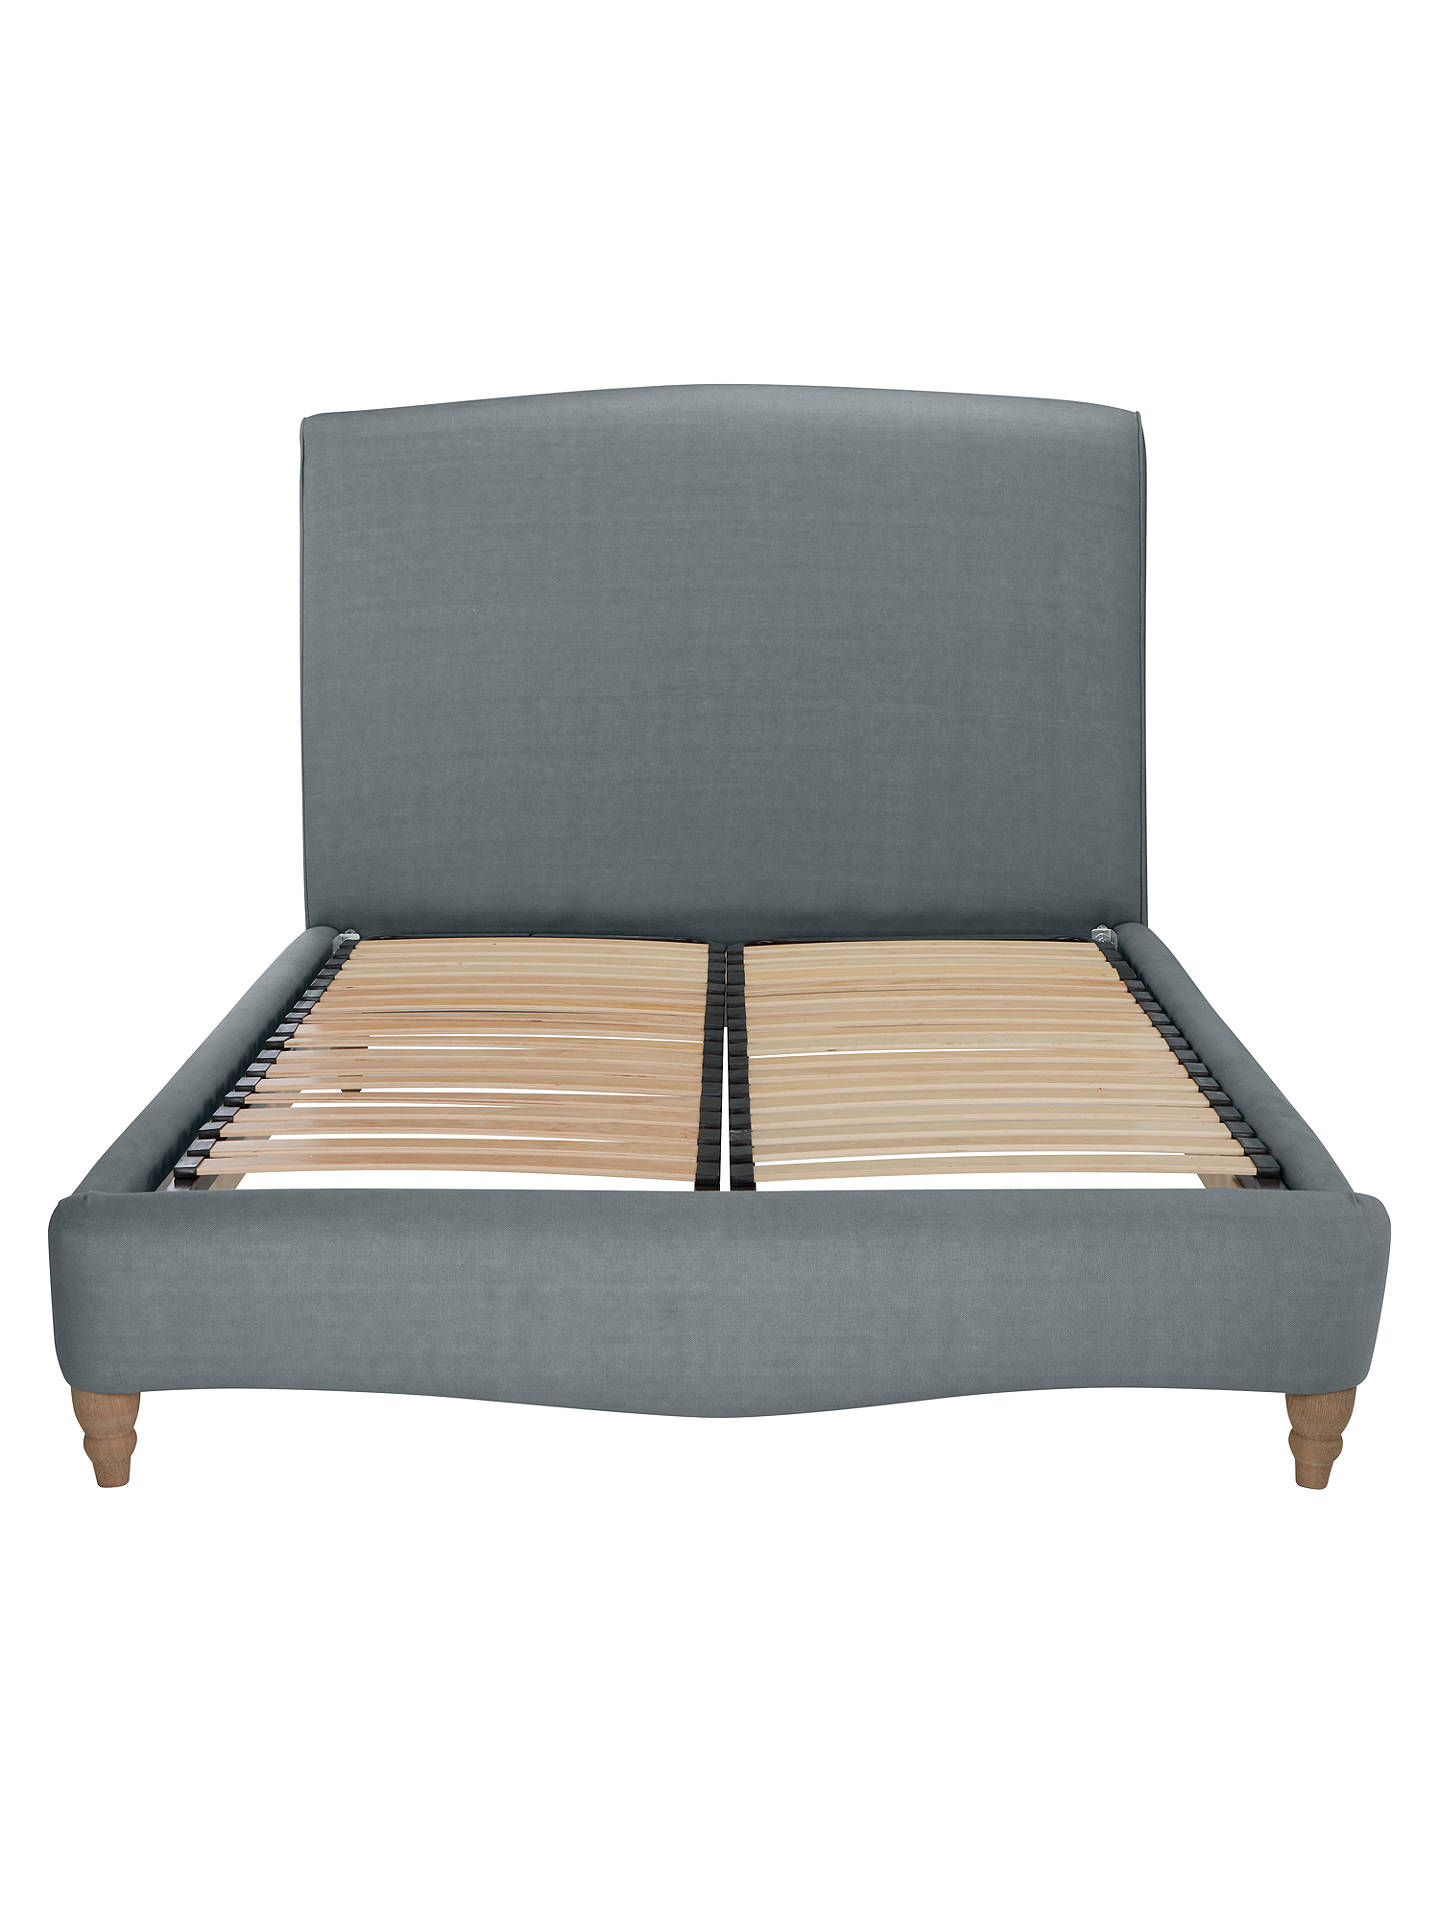 Buy Fudge Bed Frame by Loaf at John Lewis in Clever Linen, King Size, Meteor Grey Online at johnlewis.com